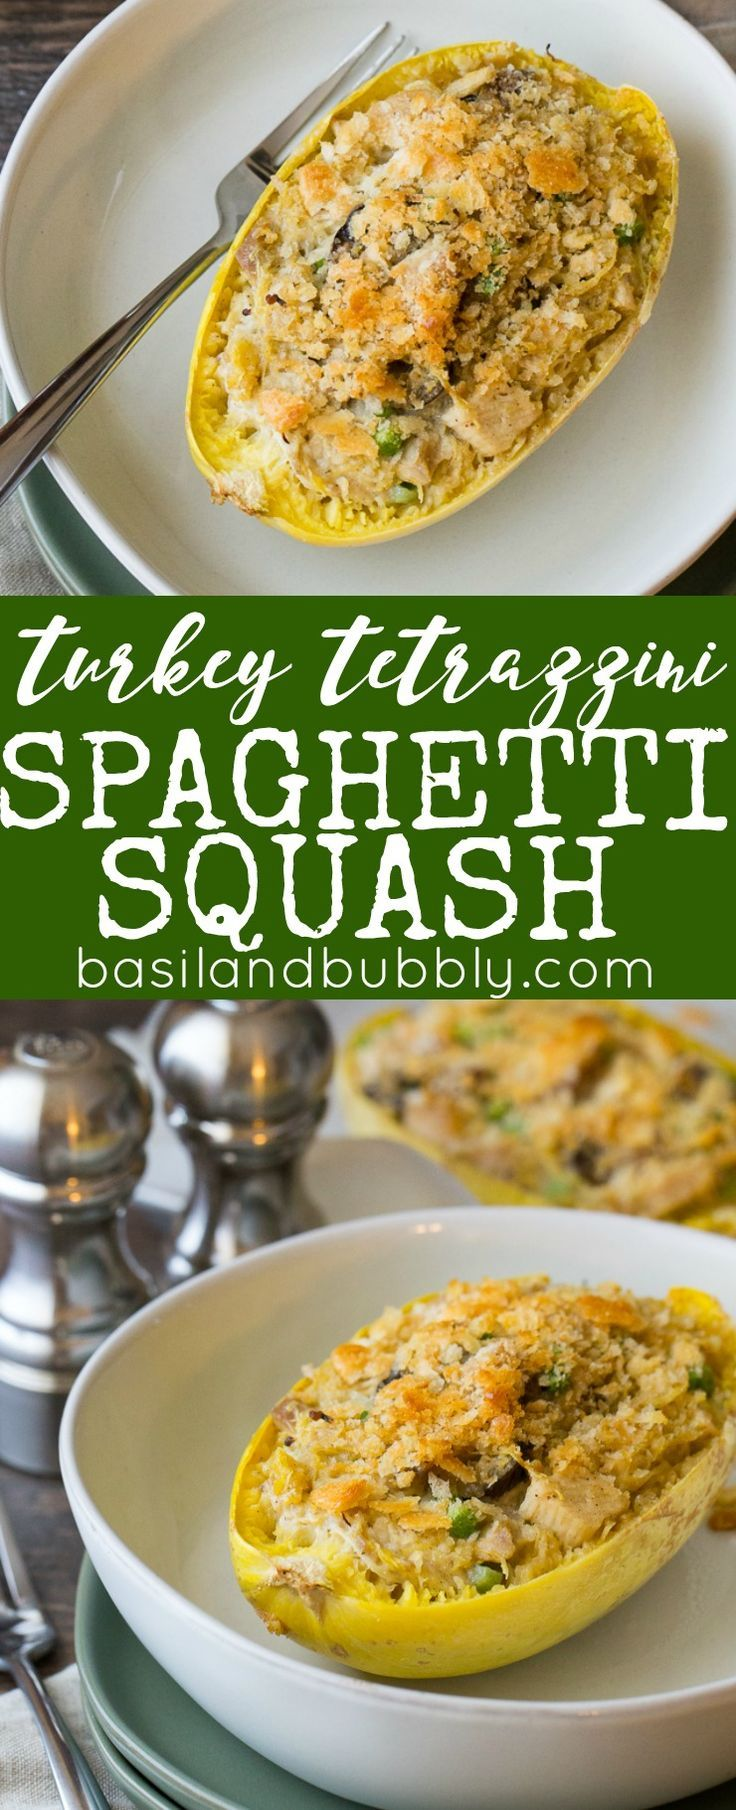 Leftover turkey tetrazzini is like a healthy casserole in its own bowl! It's creamy like a pot pie, and packed full of vegetables to use up leftovers. This easy recipe tells you exactly what to do to cook the spaghetti squash.